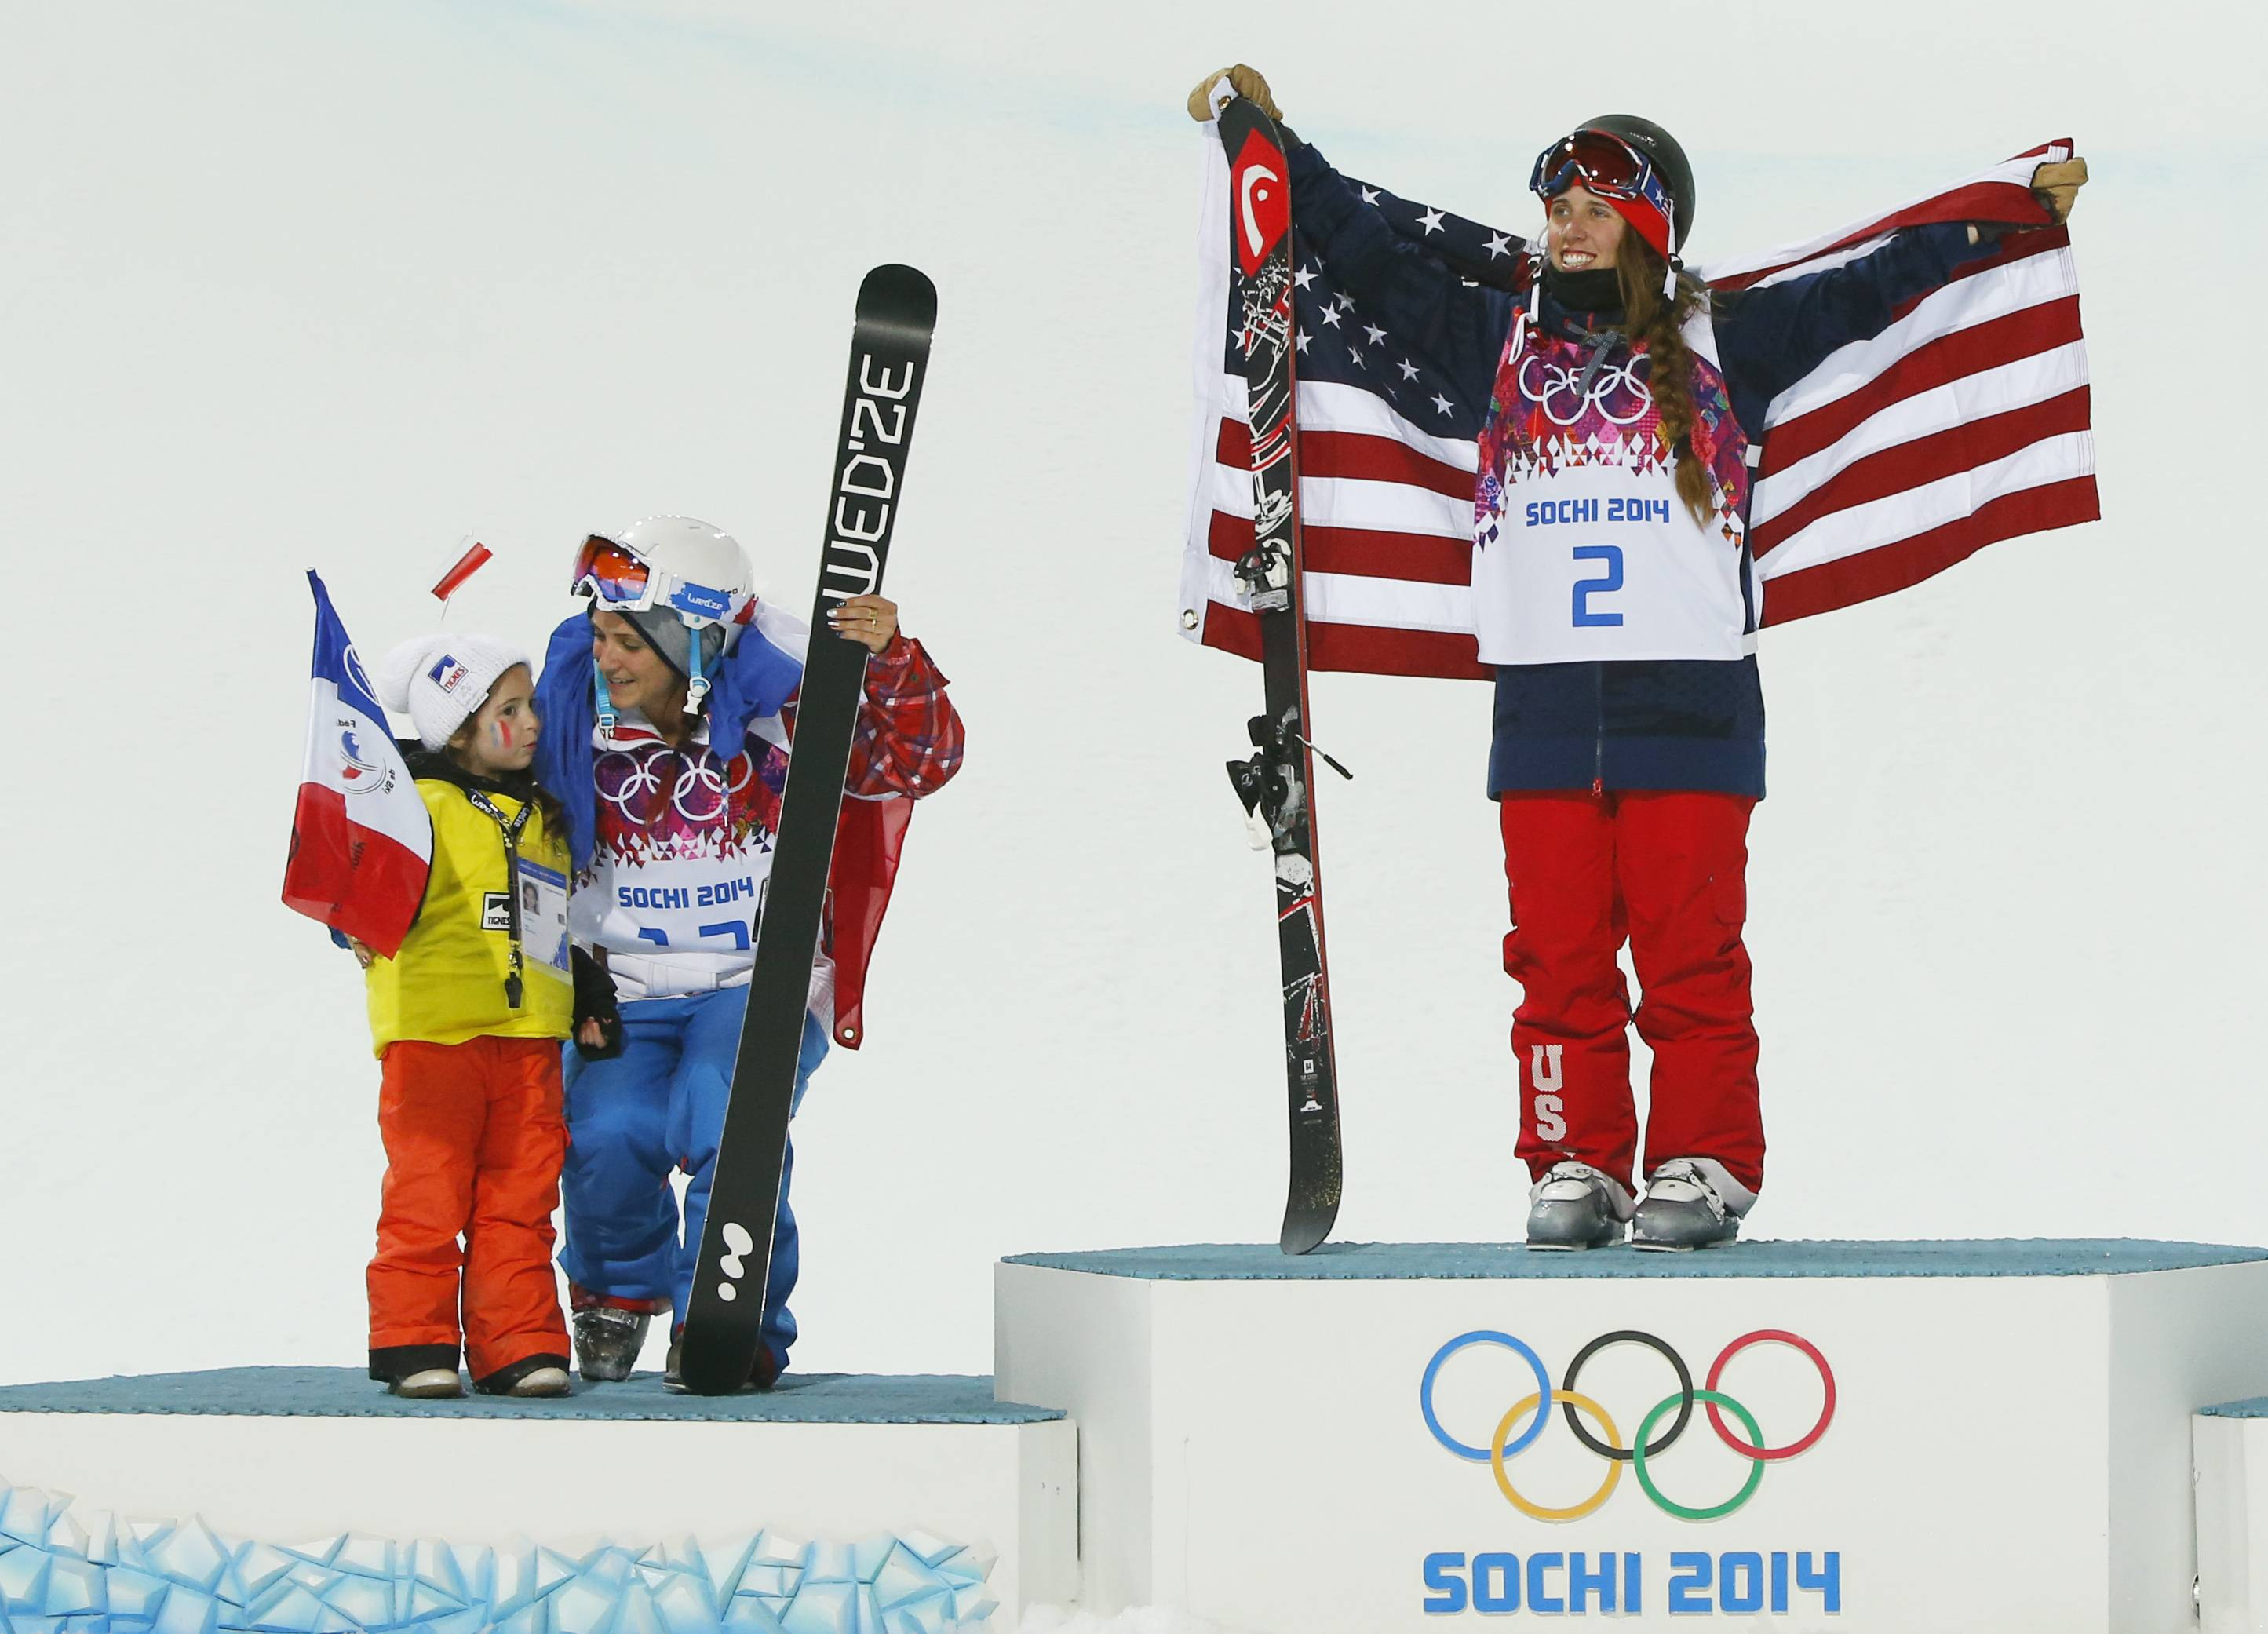 Maddie Bowman of the United States, right, celebrates after winning the gold medal in the women's ski halfpipe final, with silver medalist Marie Martinod of France, left, and Martinod's daughter Meli Rose.